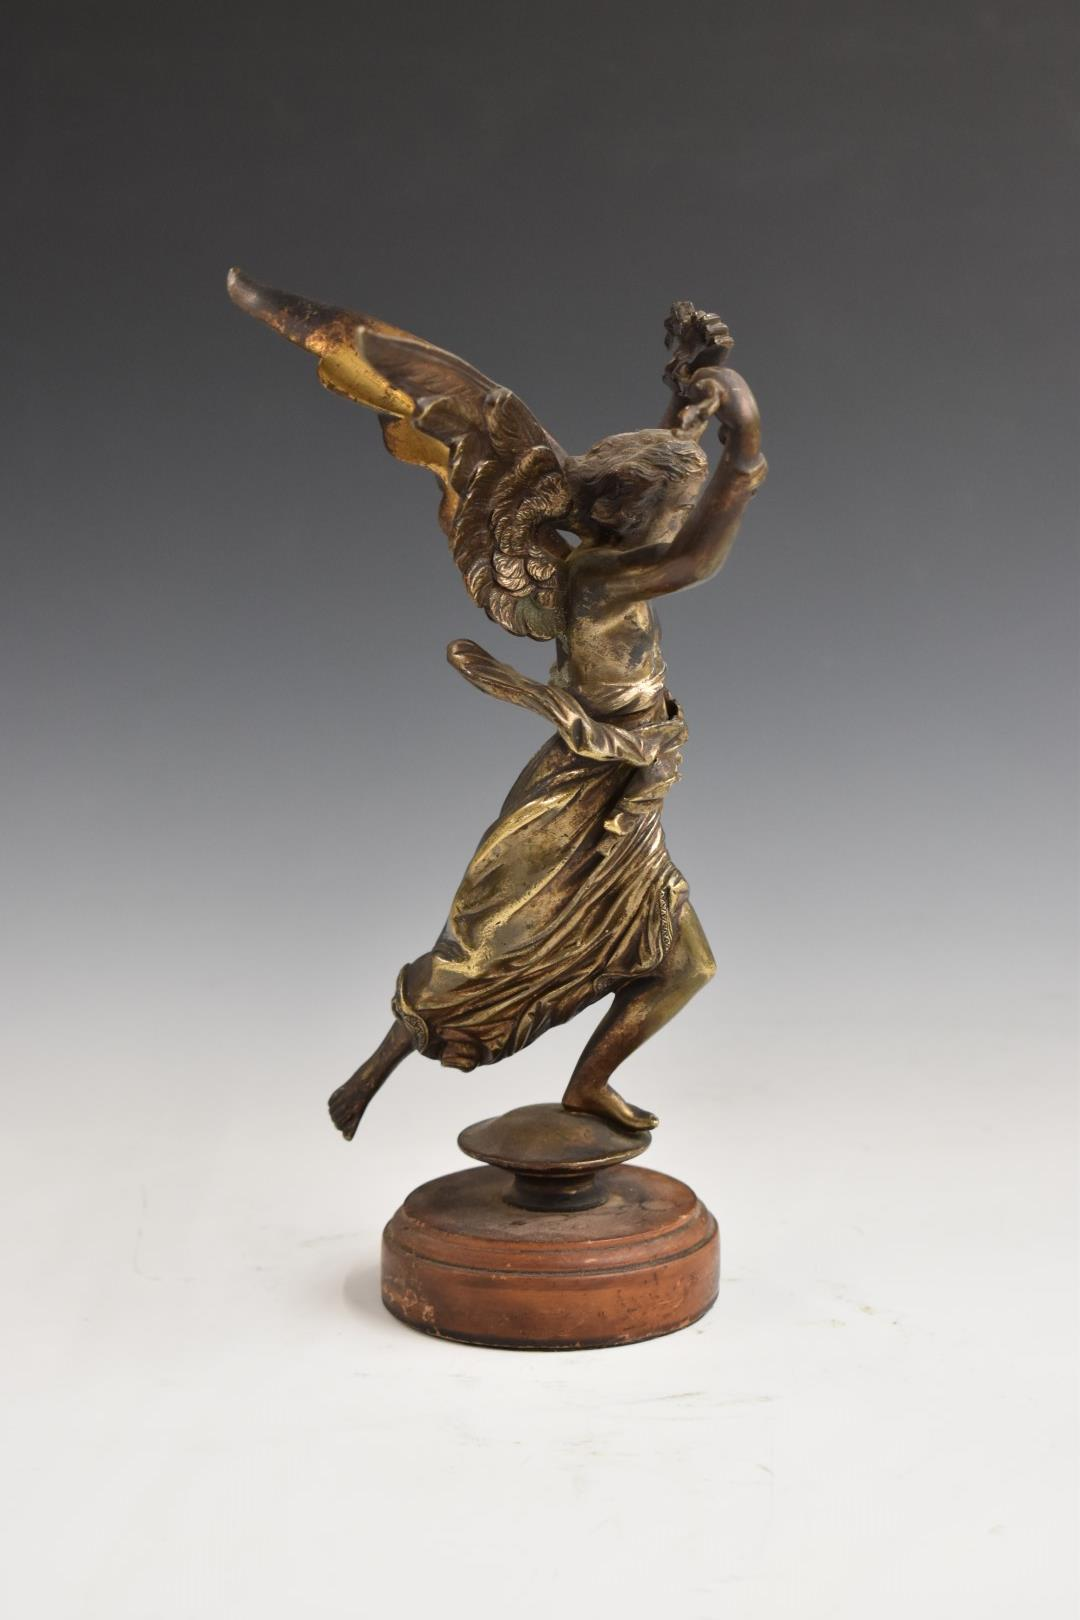 Bronzed winged lady with flowing robe, H 25cm, on turned wooden base, possibly originally a - Image 3 of 6